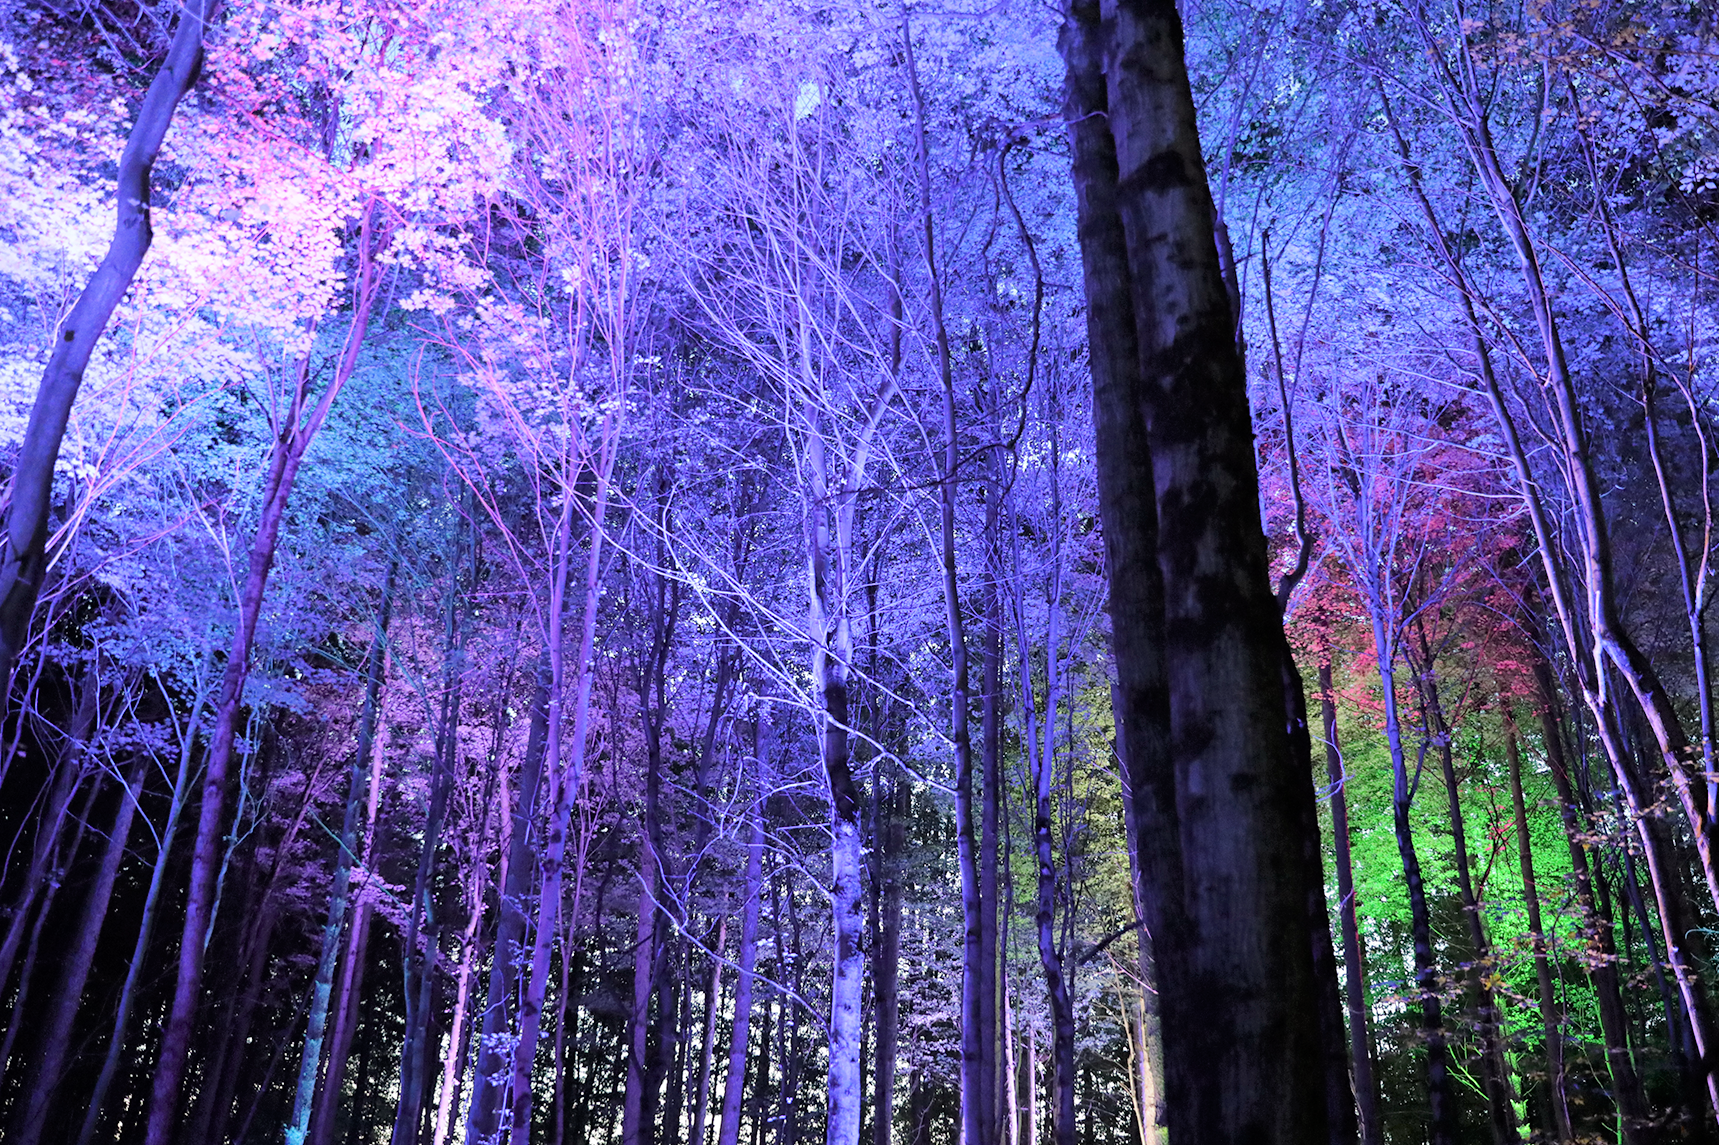 Halloween Art Shows For 2020 In Michigan Michigan forest turning into haunted Halloween sensory light show